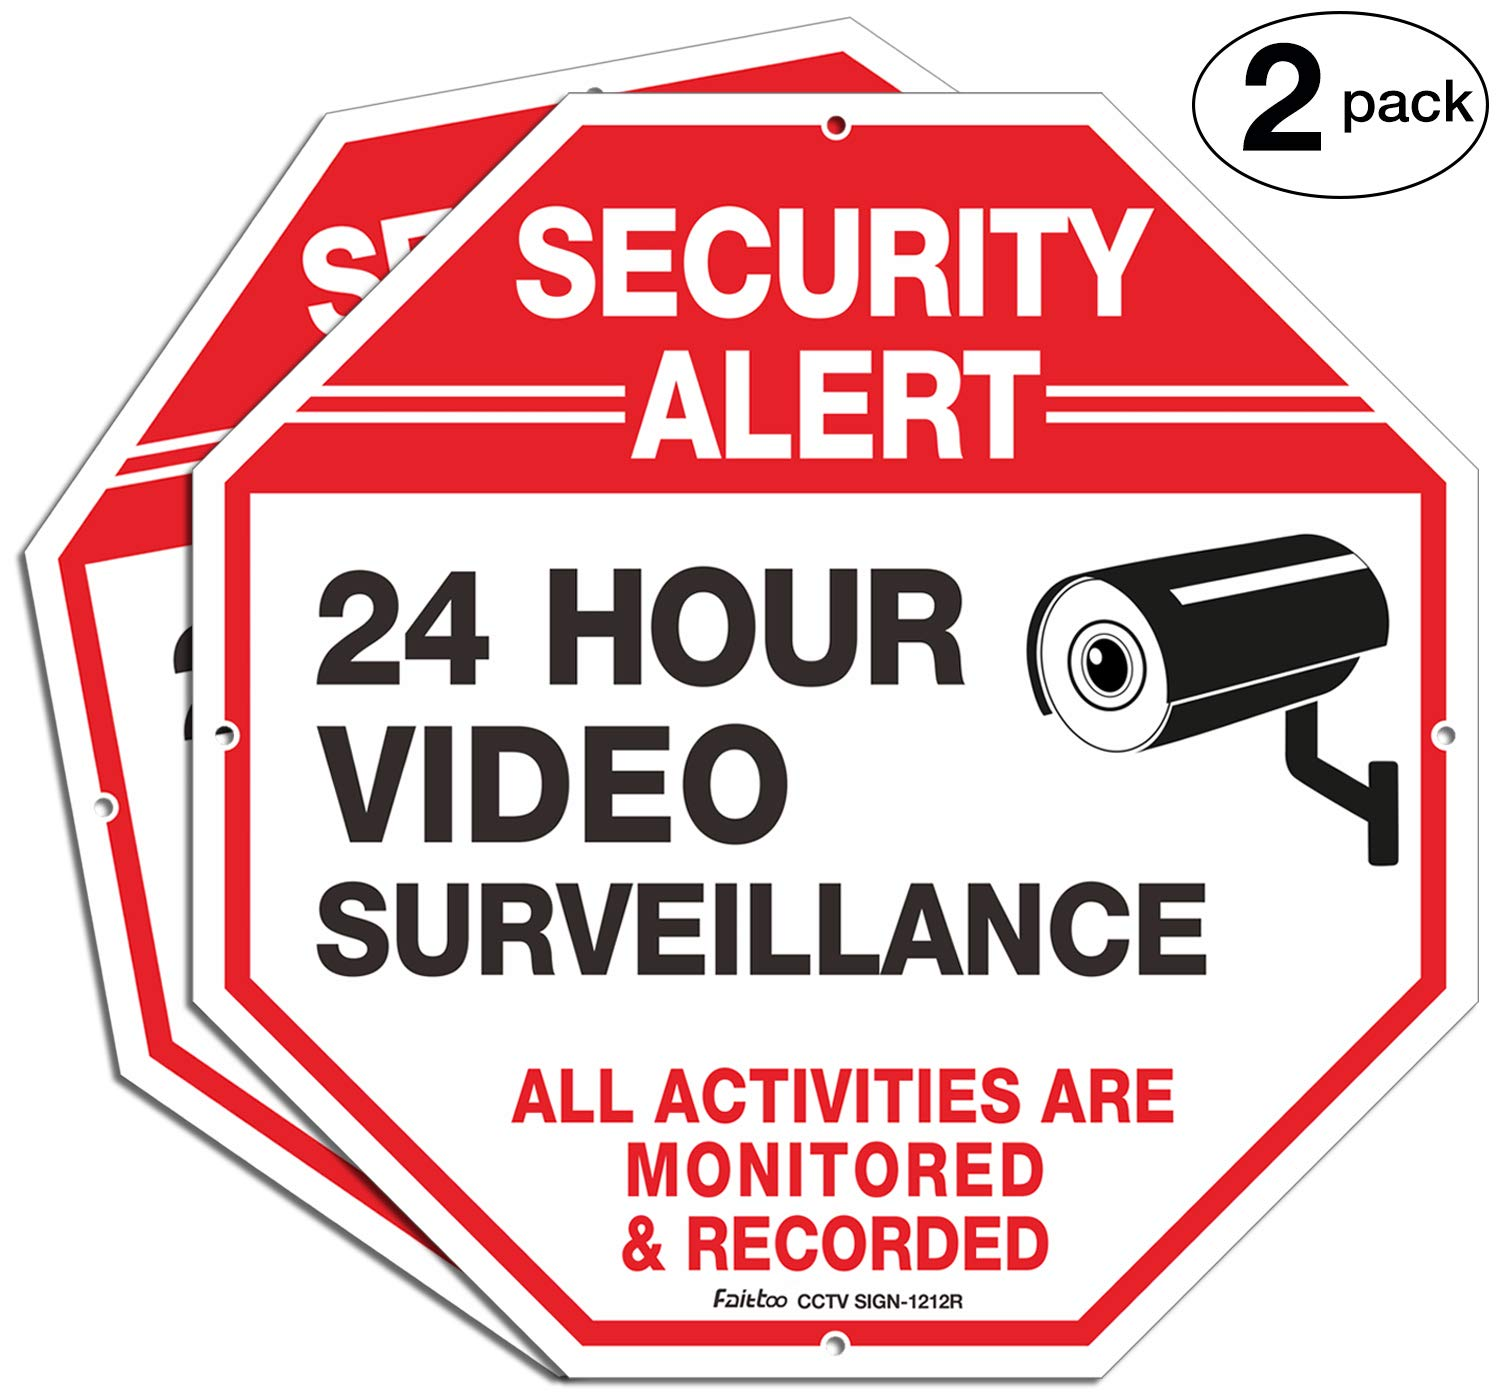 Video Surveillance Signs (2 Pack) 12 x 12 Rust Free .040 Aluminum Security Warning Reflective Metal Signs, Indoor or Outdoor Use for Home Business CCTV Security Camera, UV Protected & Waterproof